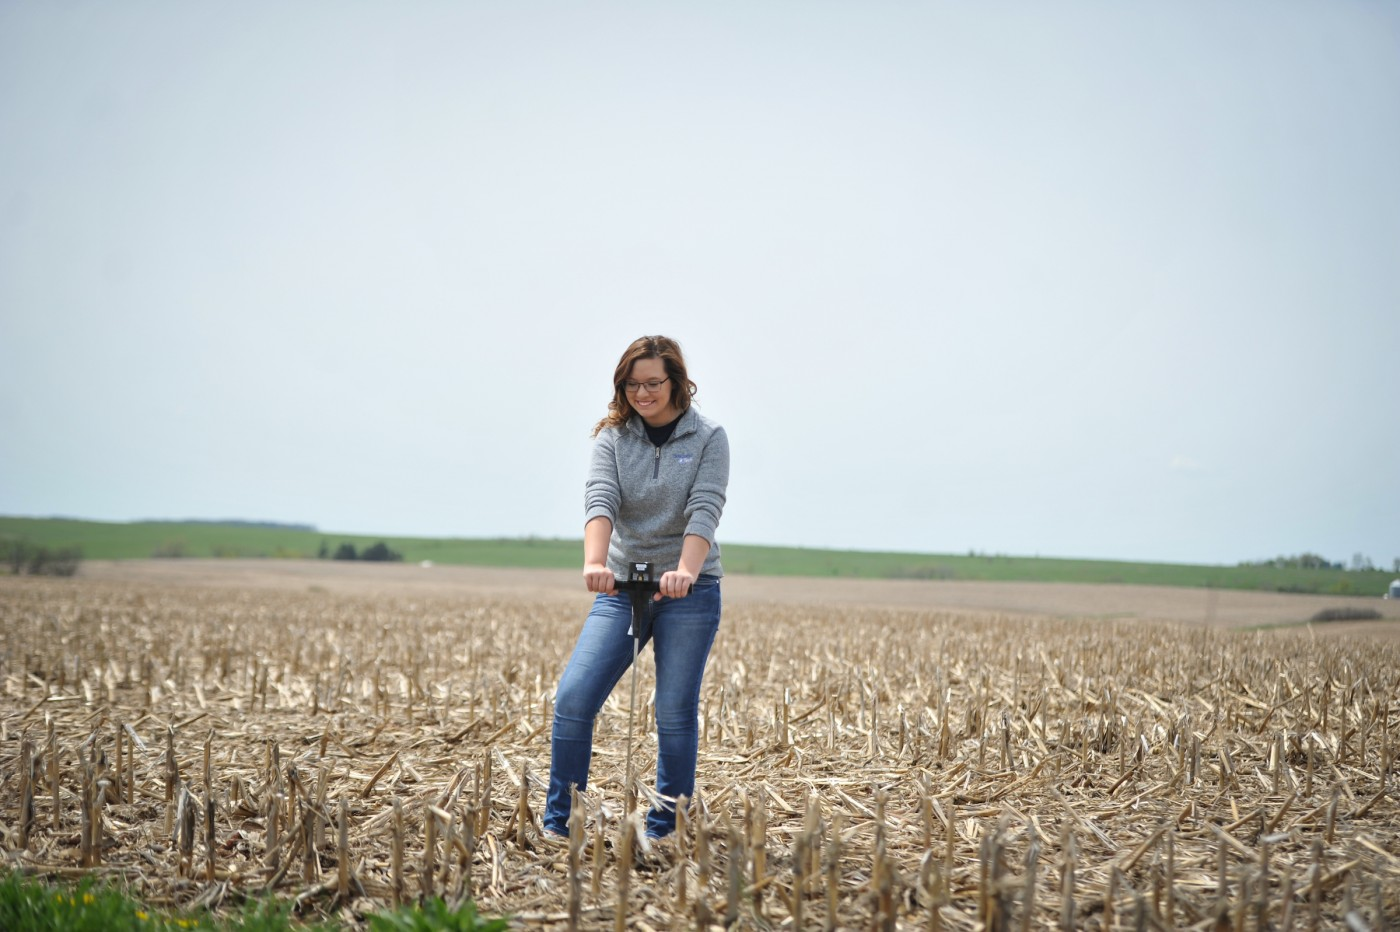 Ag student in dried corn field